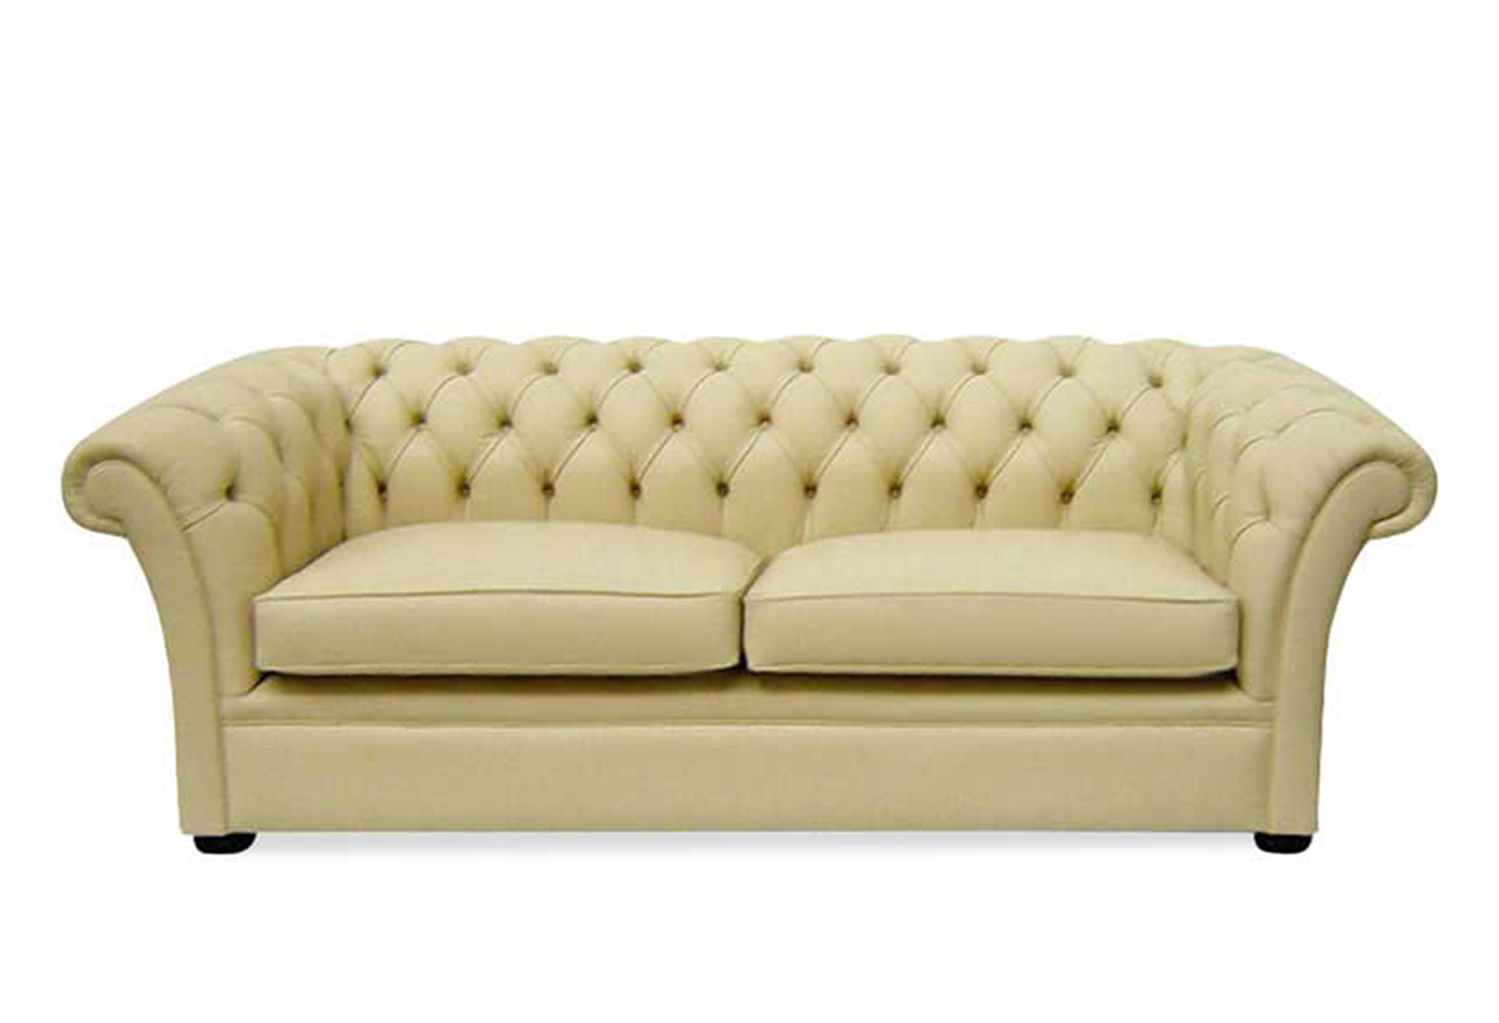 chesterfield sofa beige beige couch grace aus england kaufen. Black Bedroom Furniture Sets. Home Design Ideas